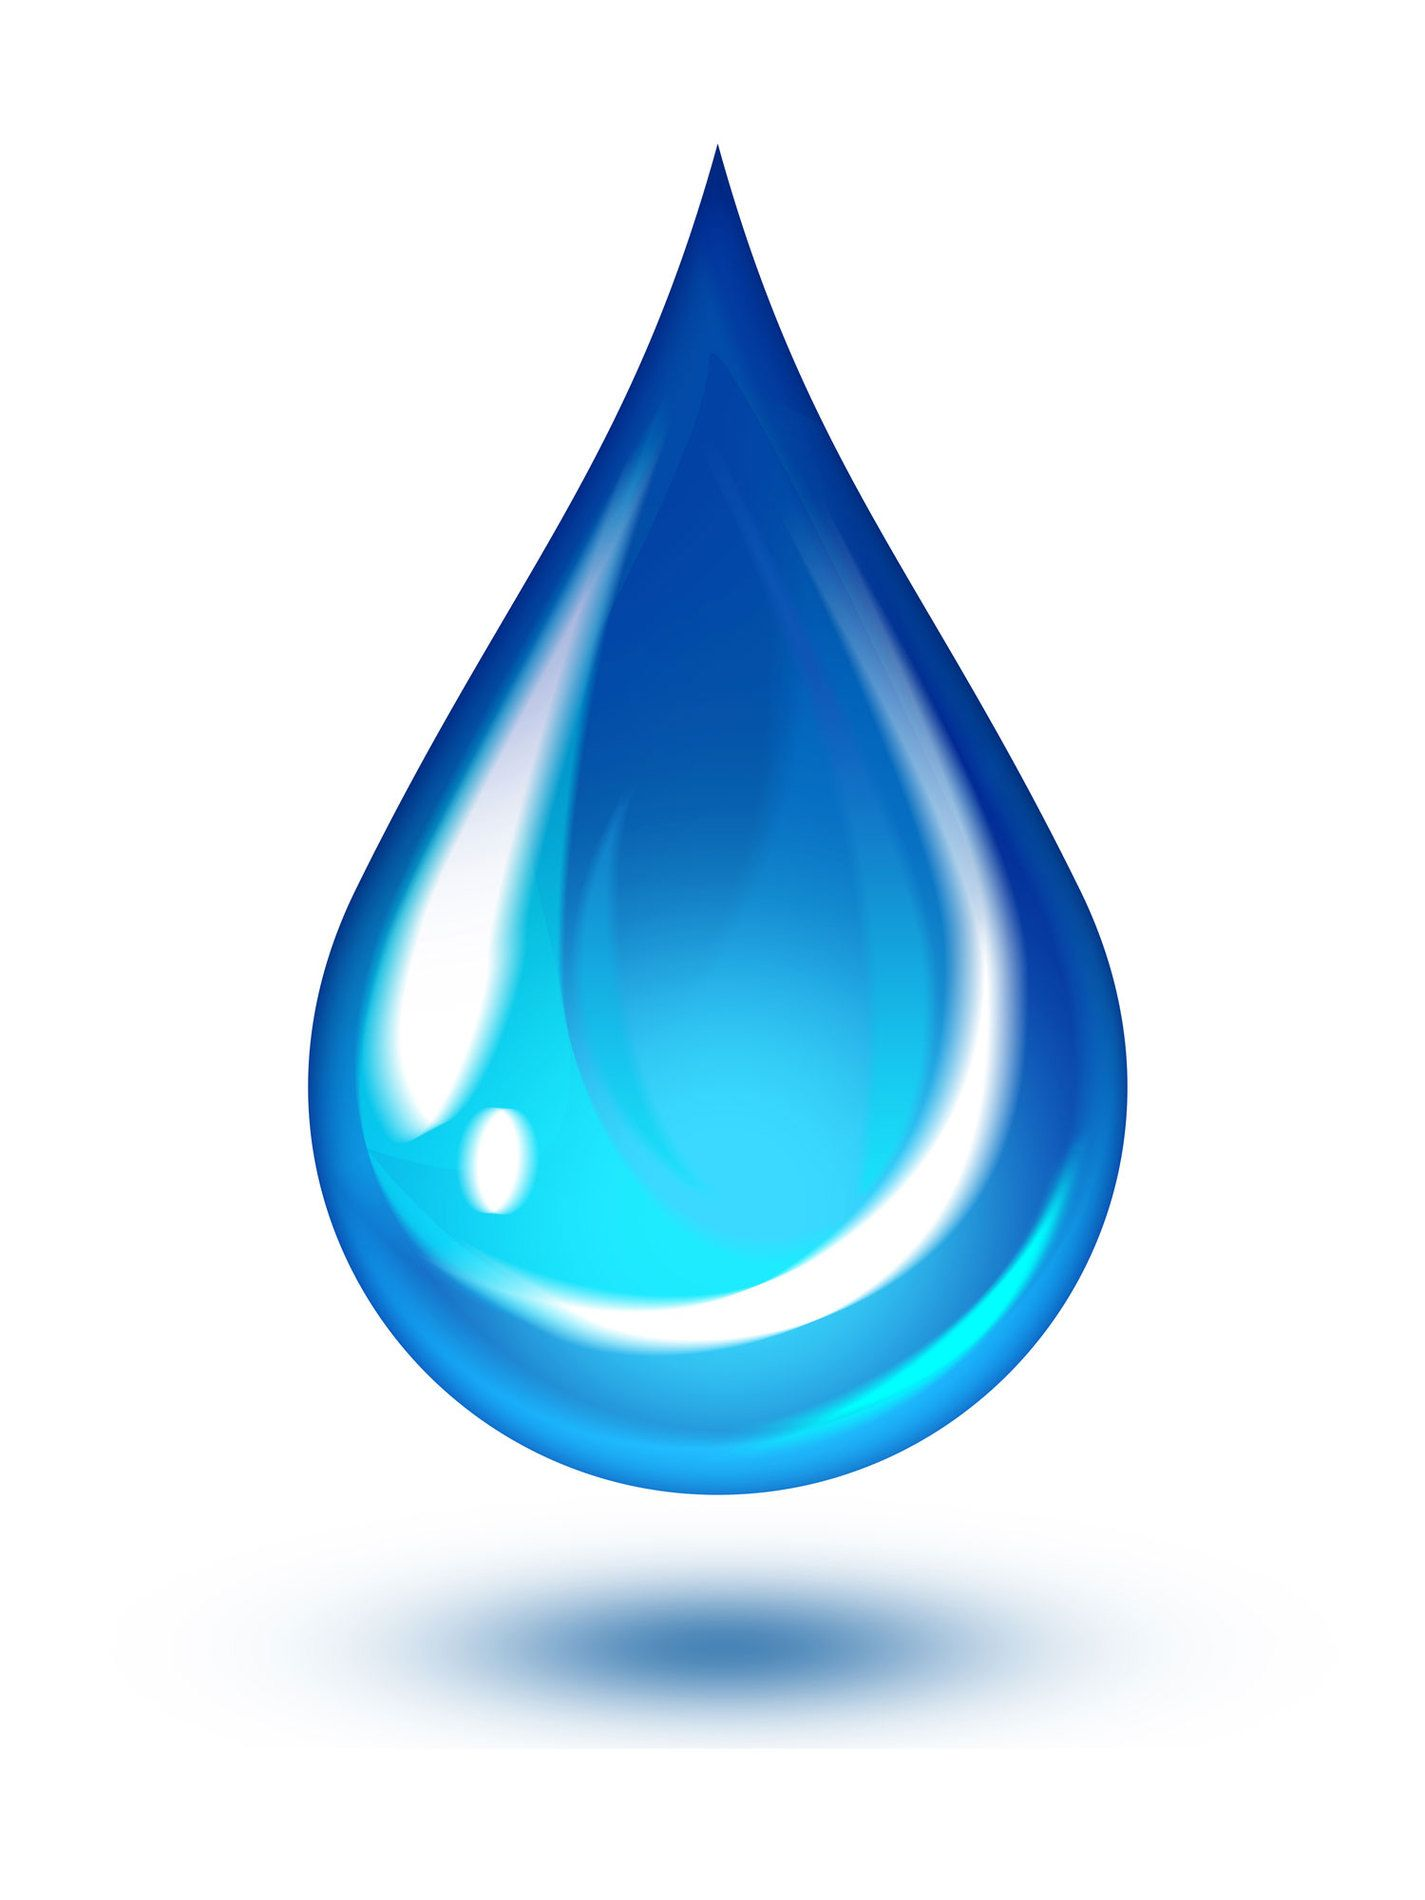 Water drop symbol clipart free to use clip art resource.